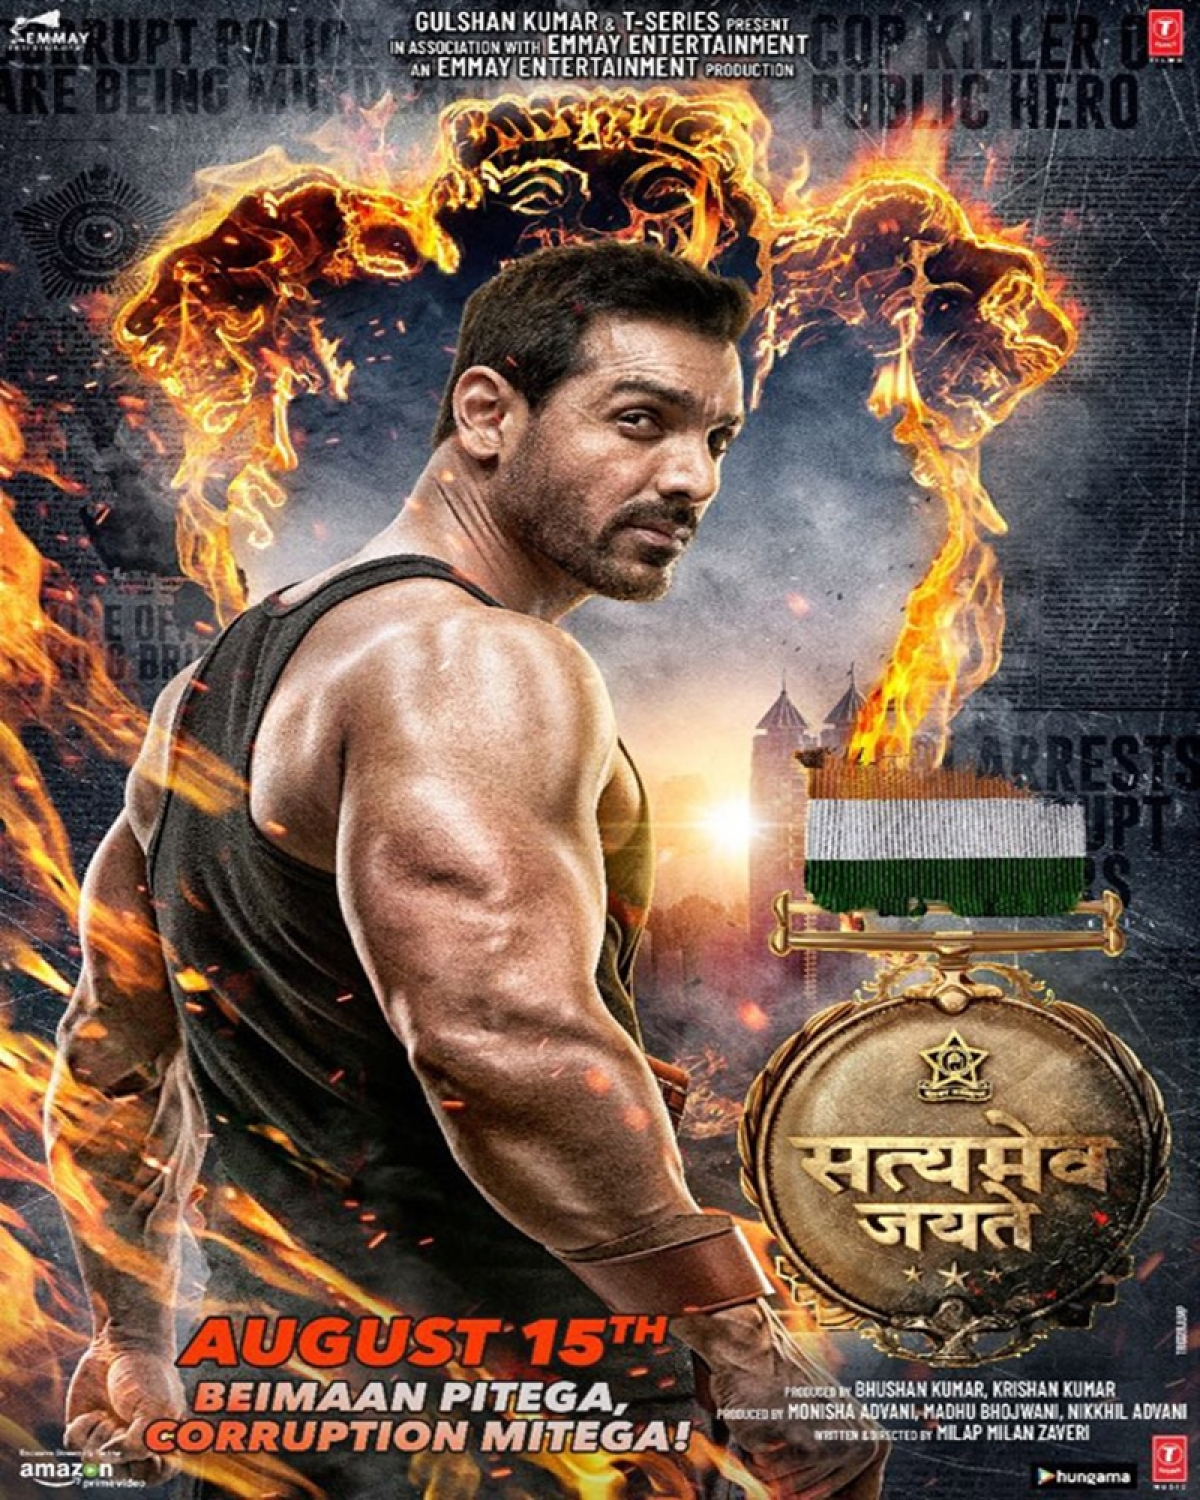 Satyameva Jayate Poster: John Abraham looks fierce and intense in this new poster of the film